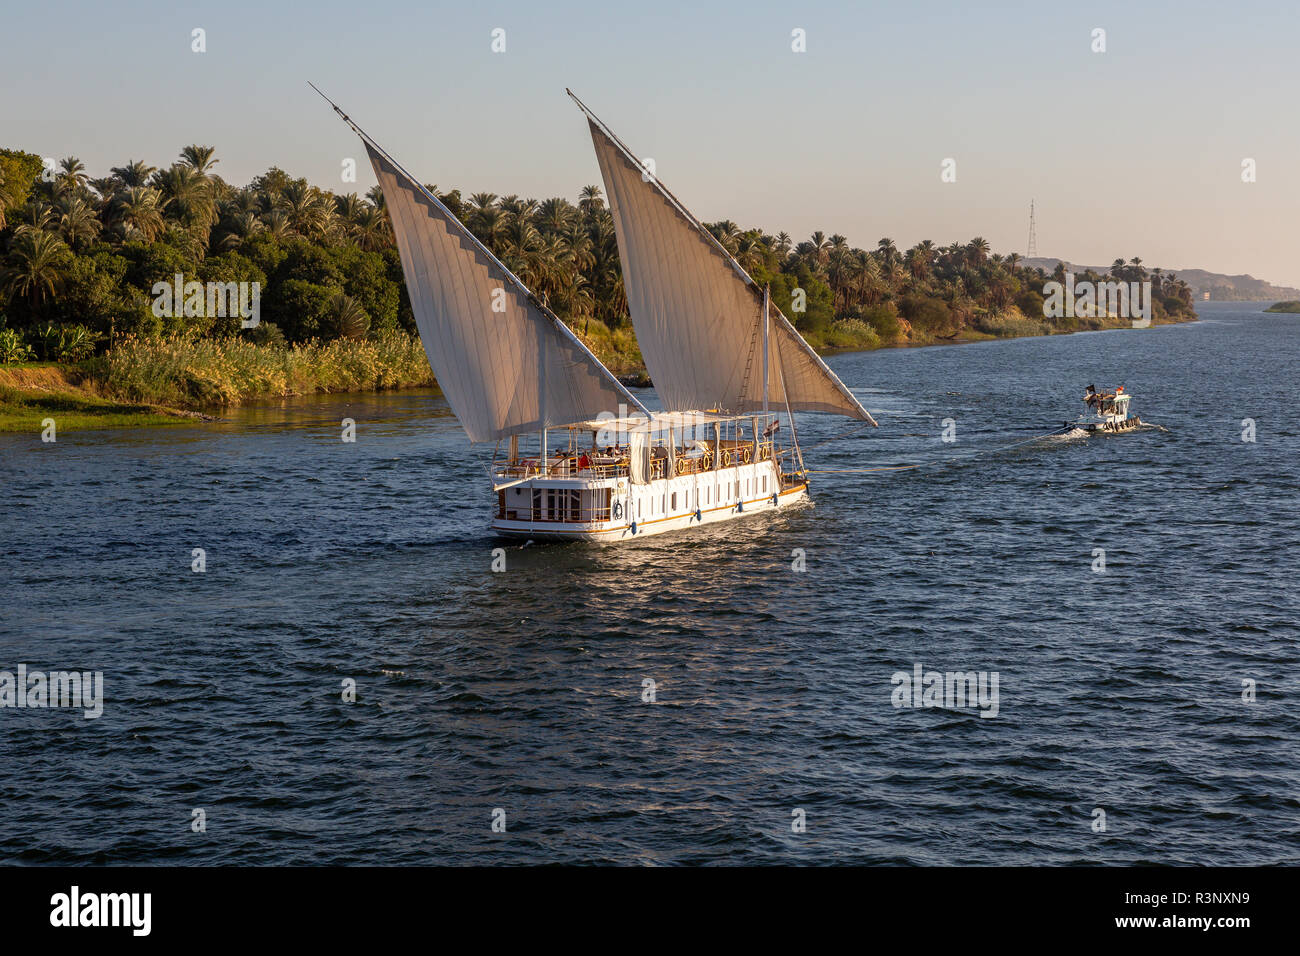 People on board a bespoke Dahabiya sailboat called MS Donia Dahabiya, a Cruise boat on the River Nile, Egypt, Africa - Stock Image